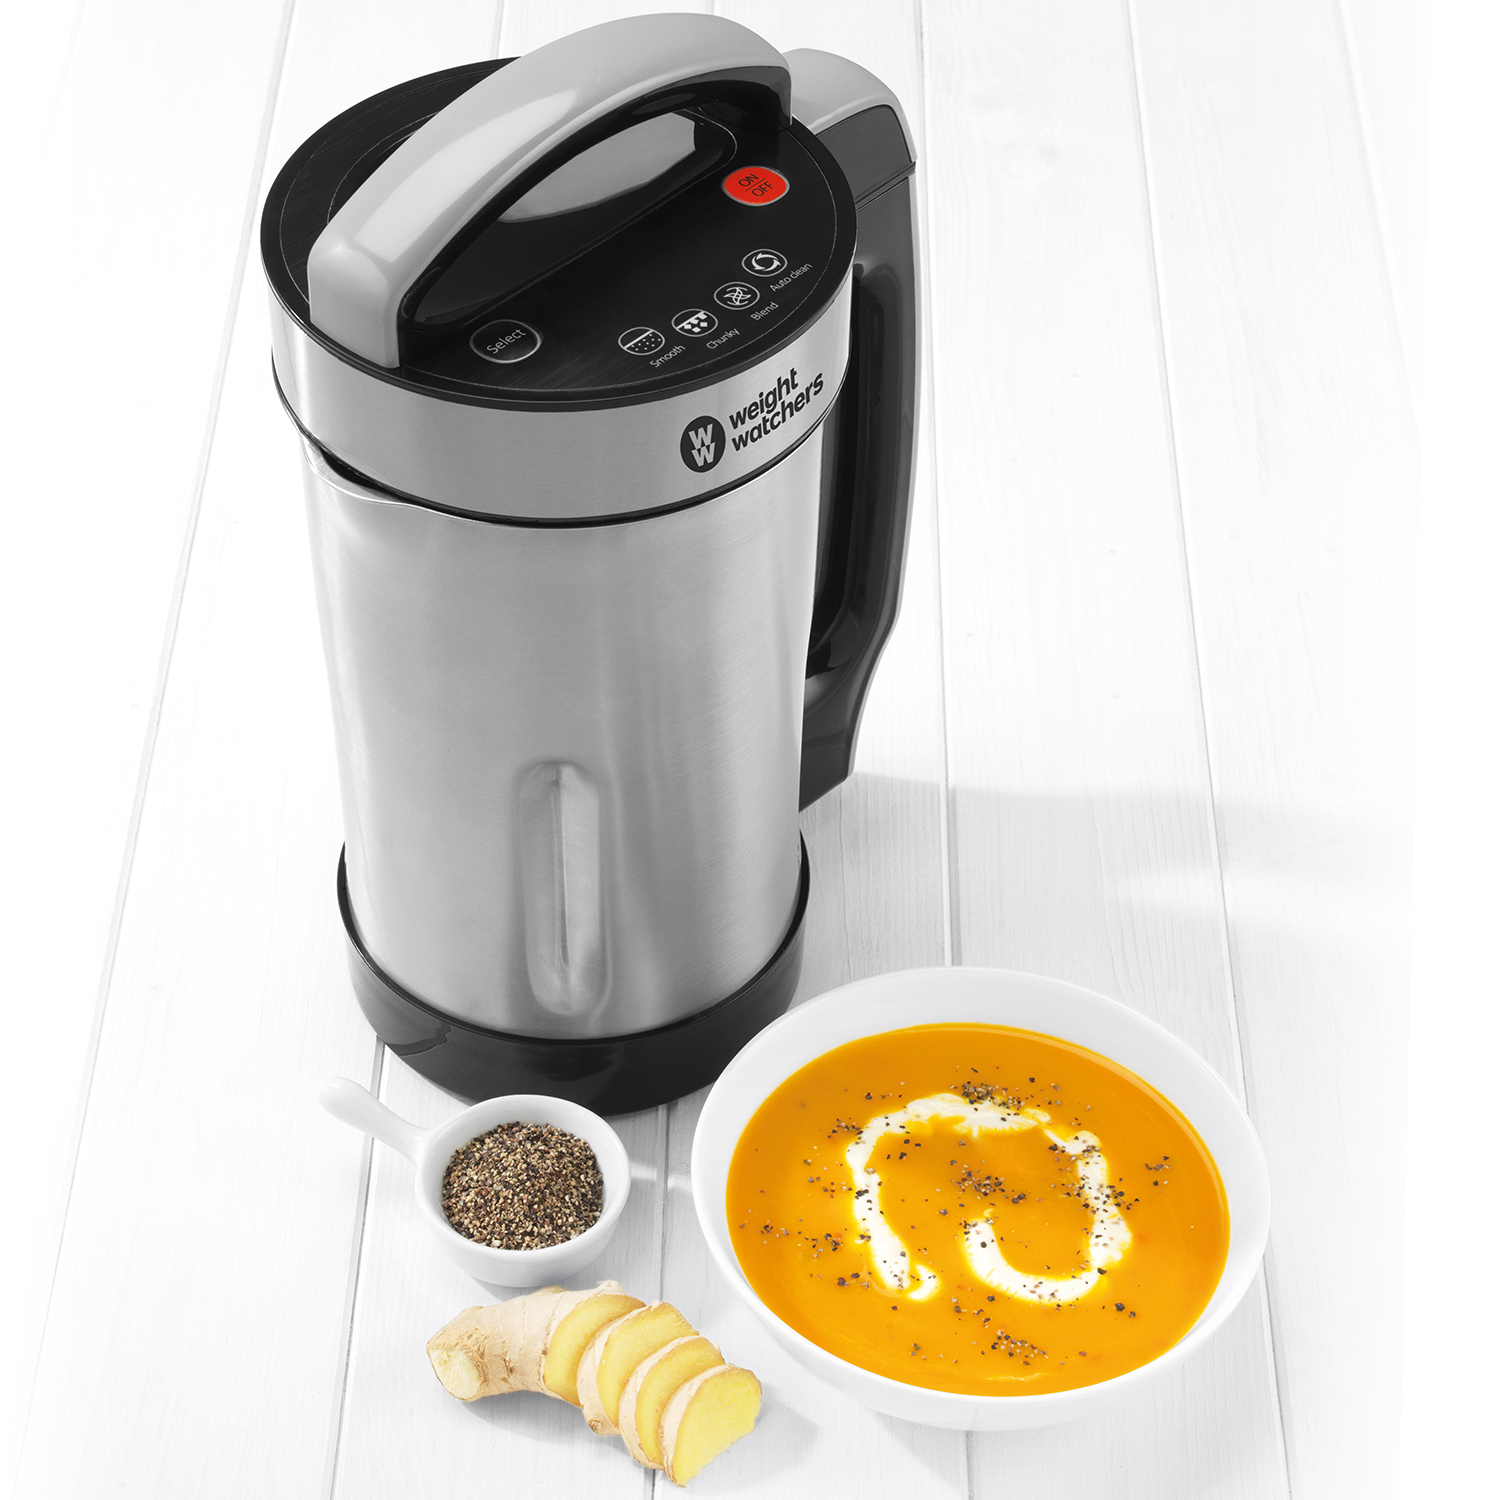 Weight Wathers 1.6L Soup Maker